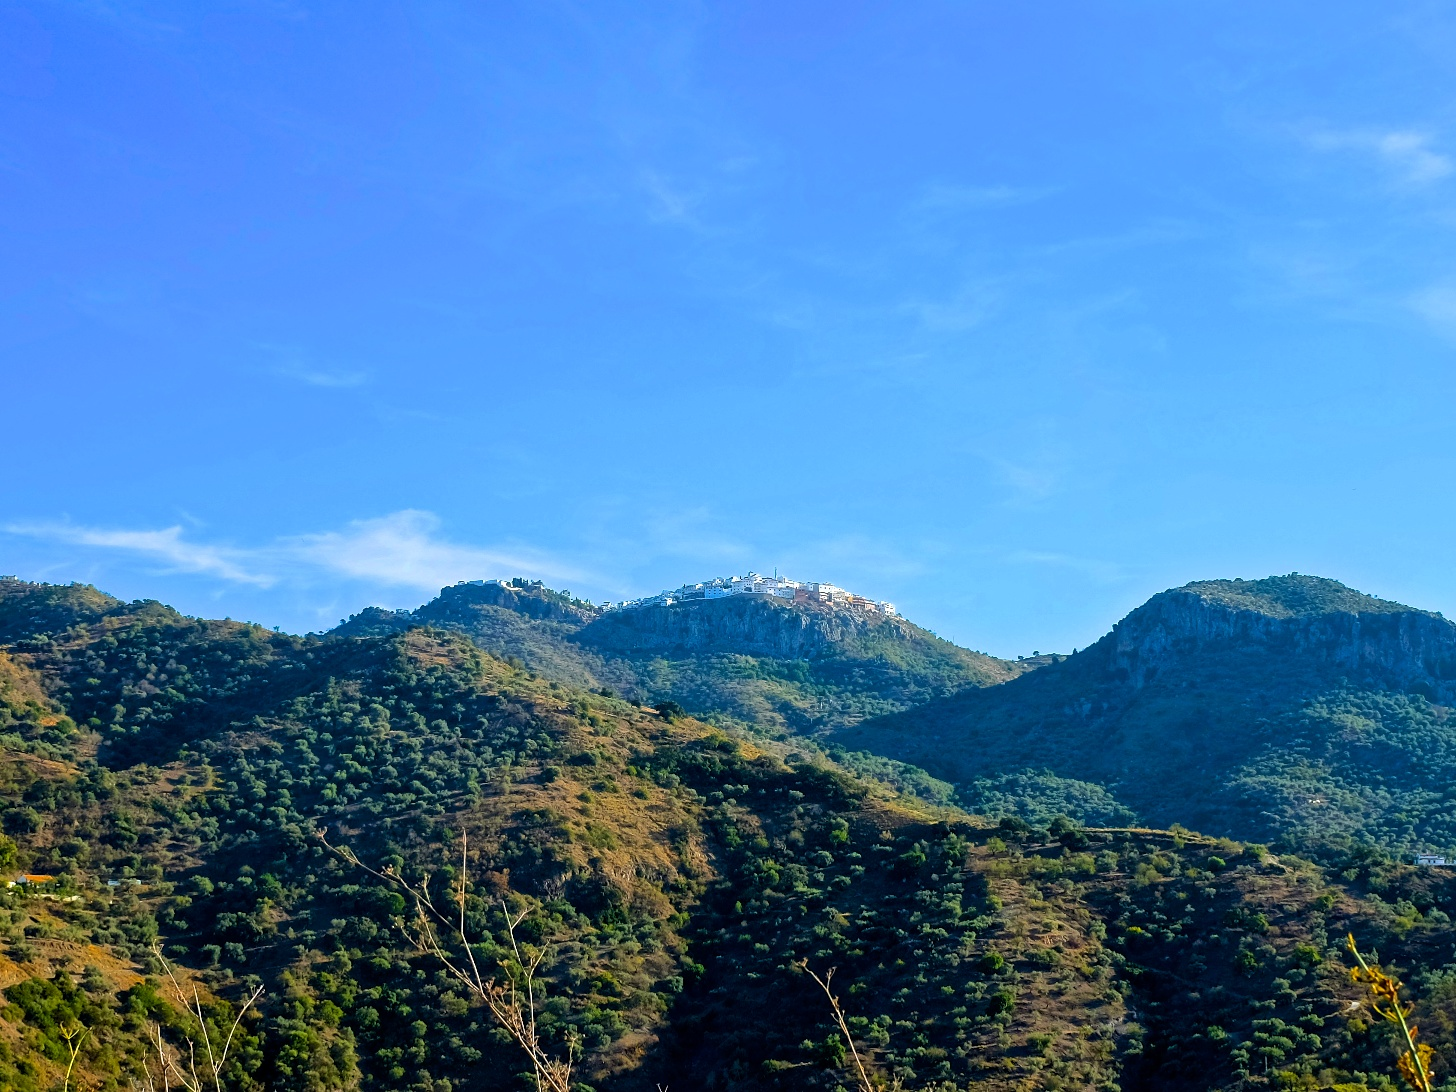 If you look closely at the top of that middle mountain, you can see the village of Comares